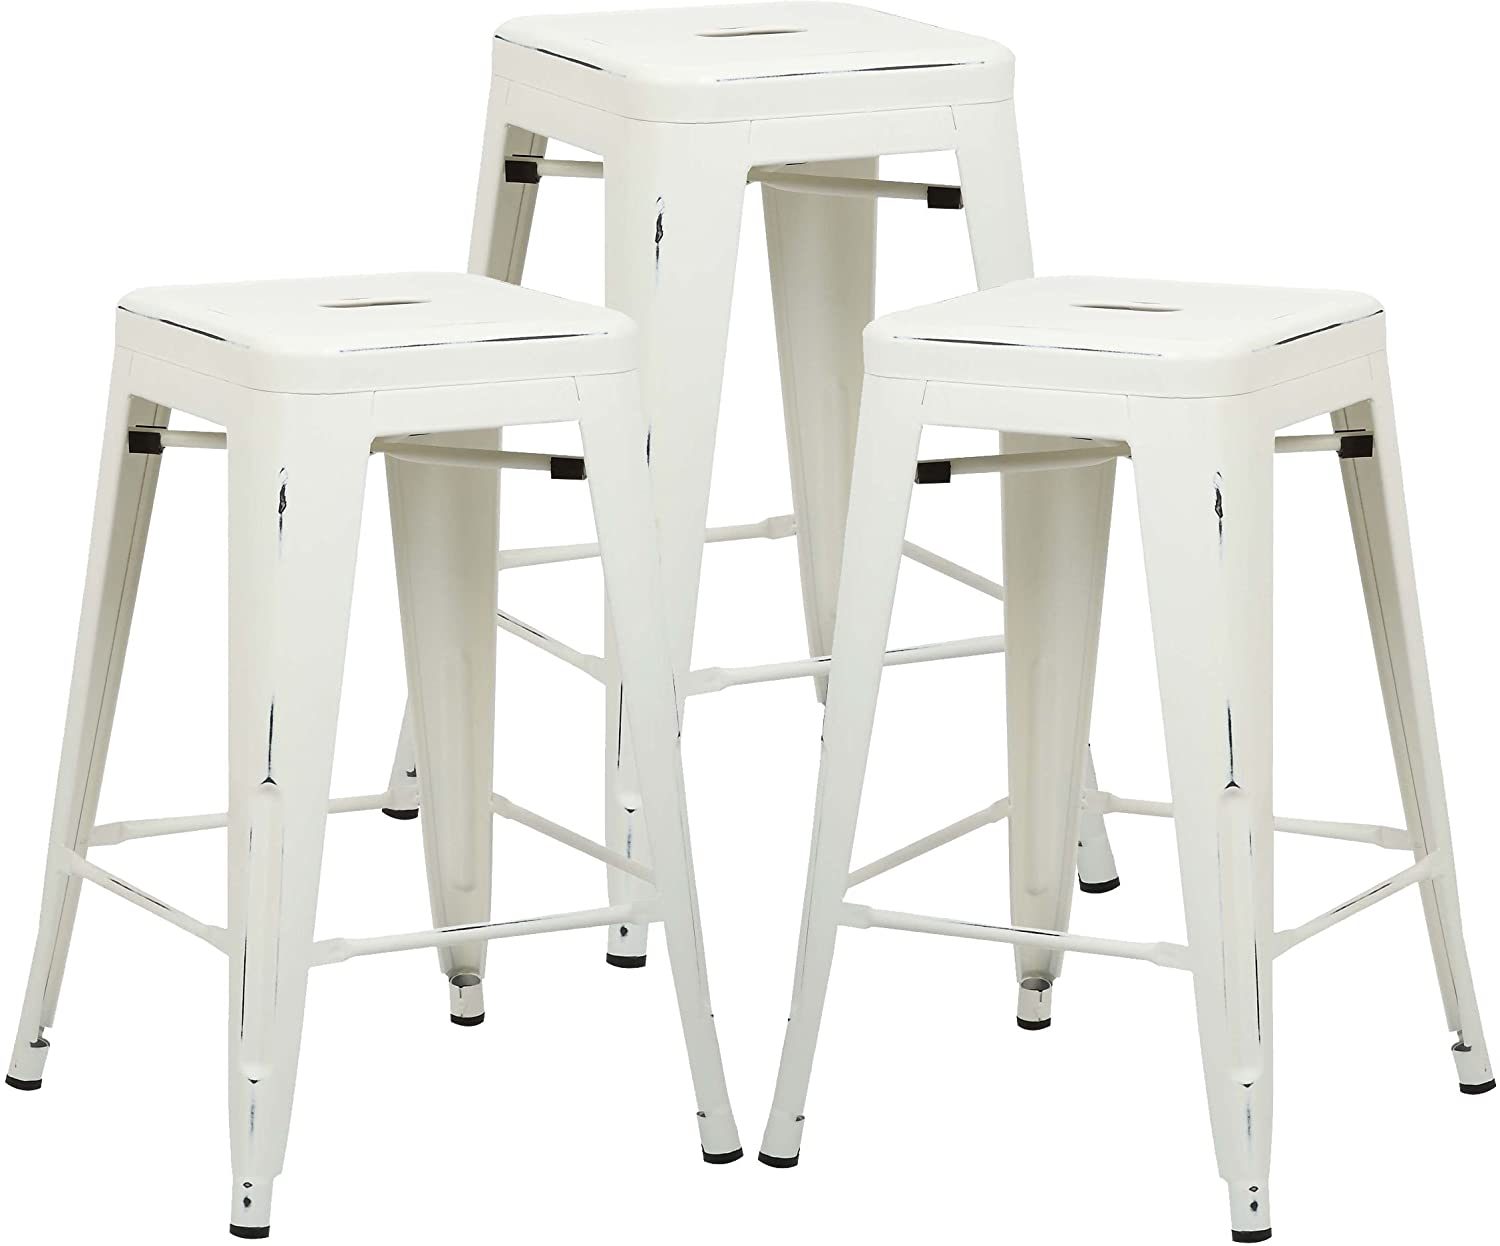 Poly and Bark Trattoria 24 Industrial Metal Counter Bar Stool, Distressed White Set of 3